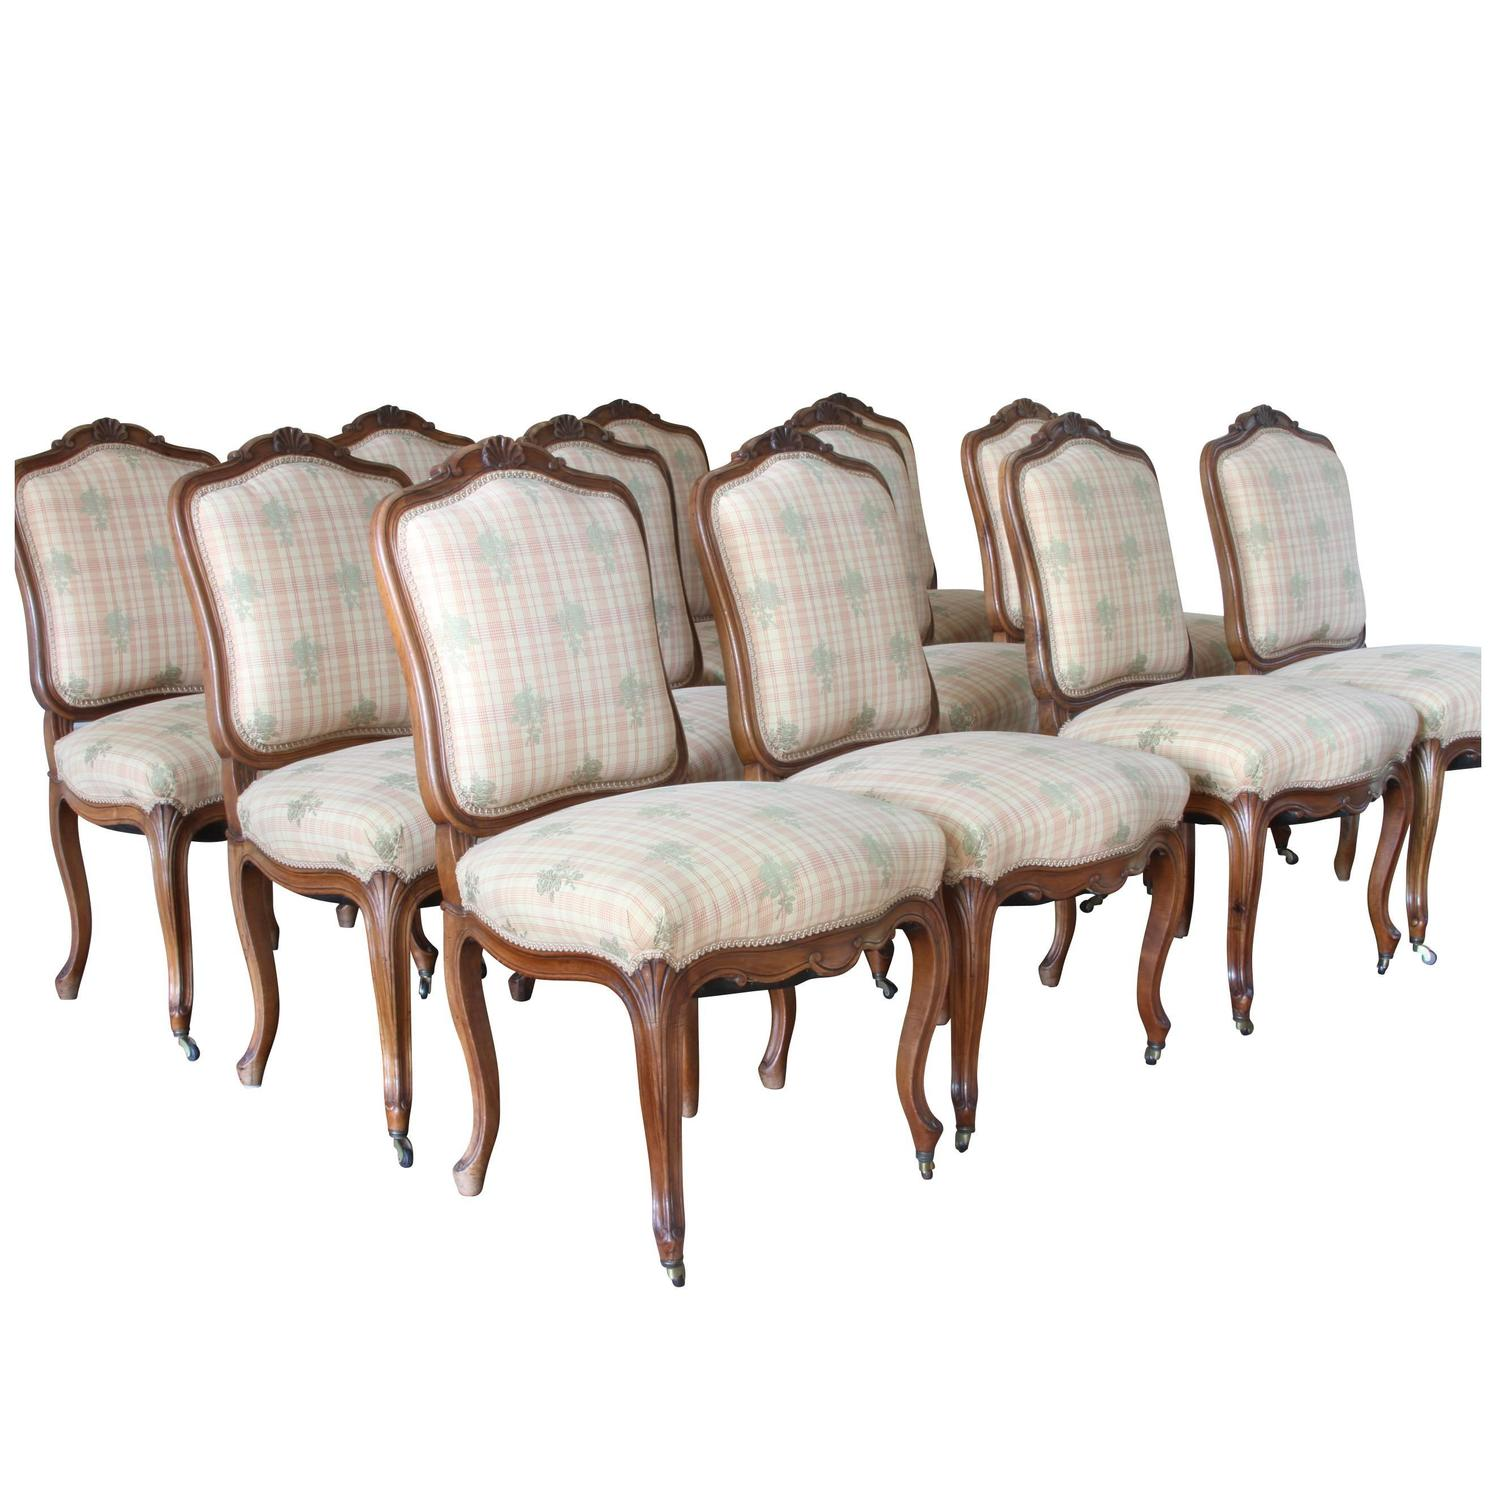 french antique chairs for sale ivory bedroom chair set of 12 carved fruitwood dining